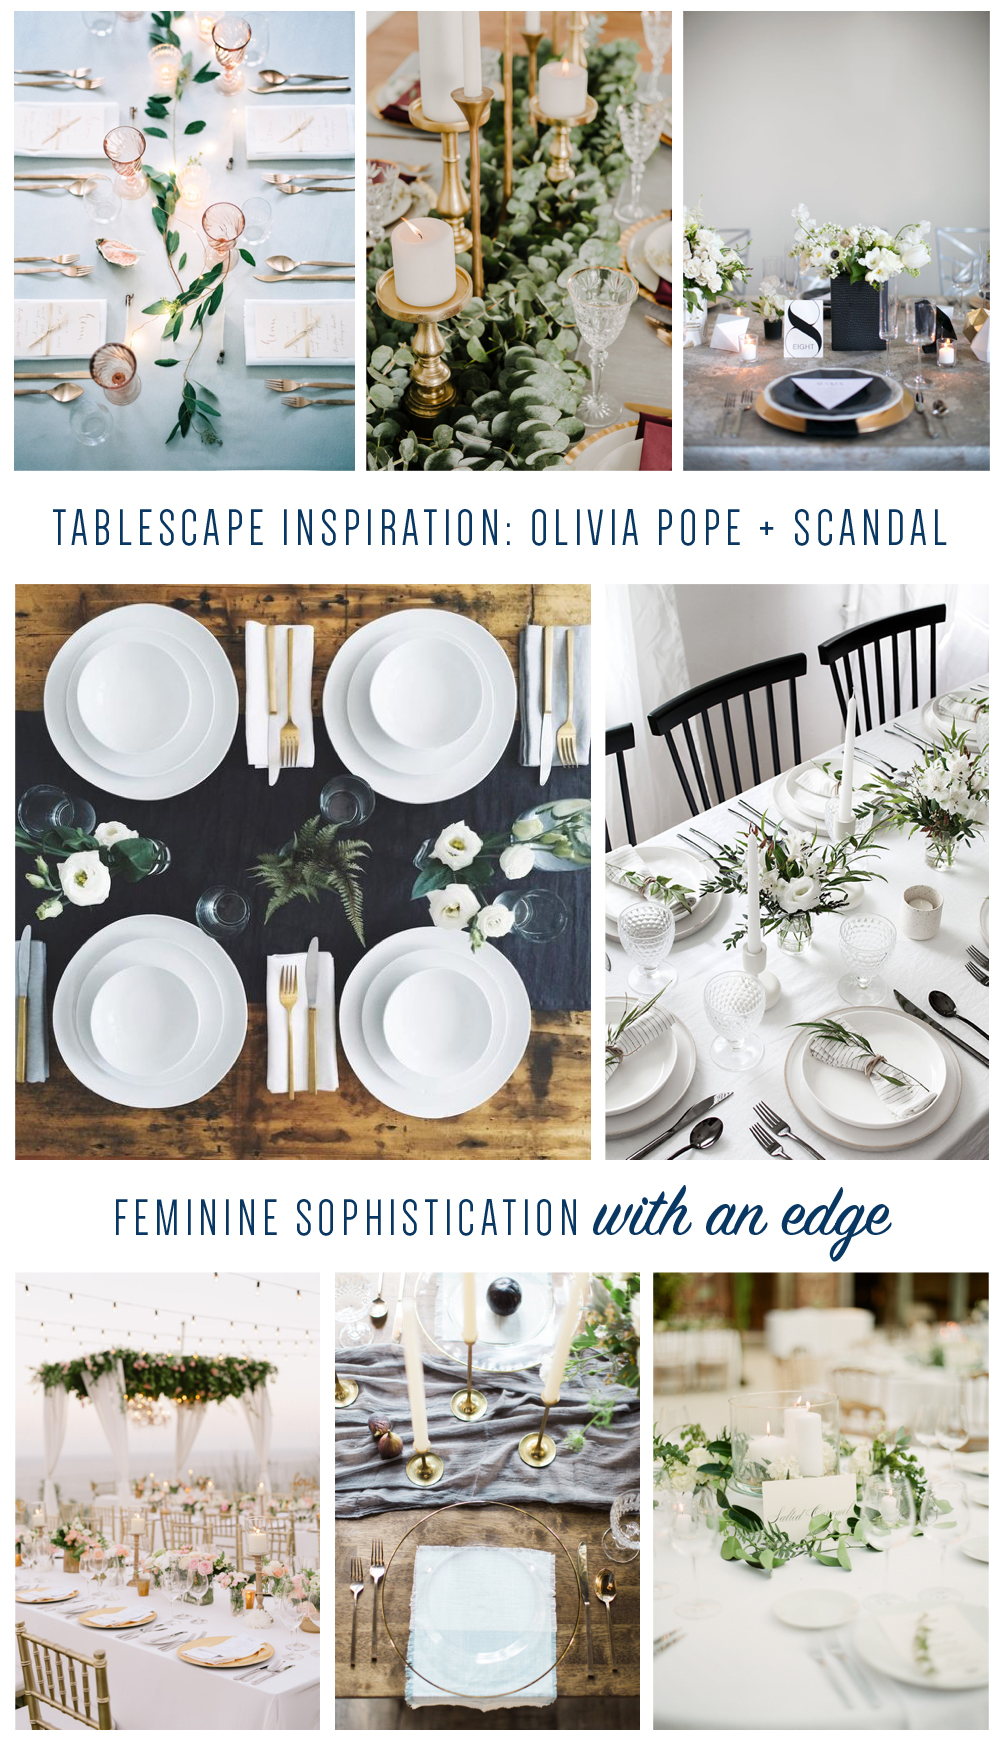 Photo credits (clockwise, starting from the top left):  Peaches and Mint |  Ruffled |  Grey Likes Weddings |  Red House VT |  Homey Oh My |  The Wedding Scoop |  Style Me Pretty  |  Greg Finck